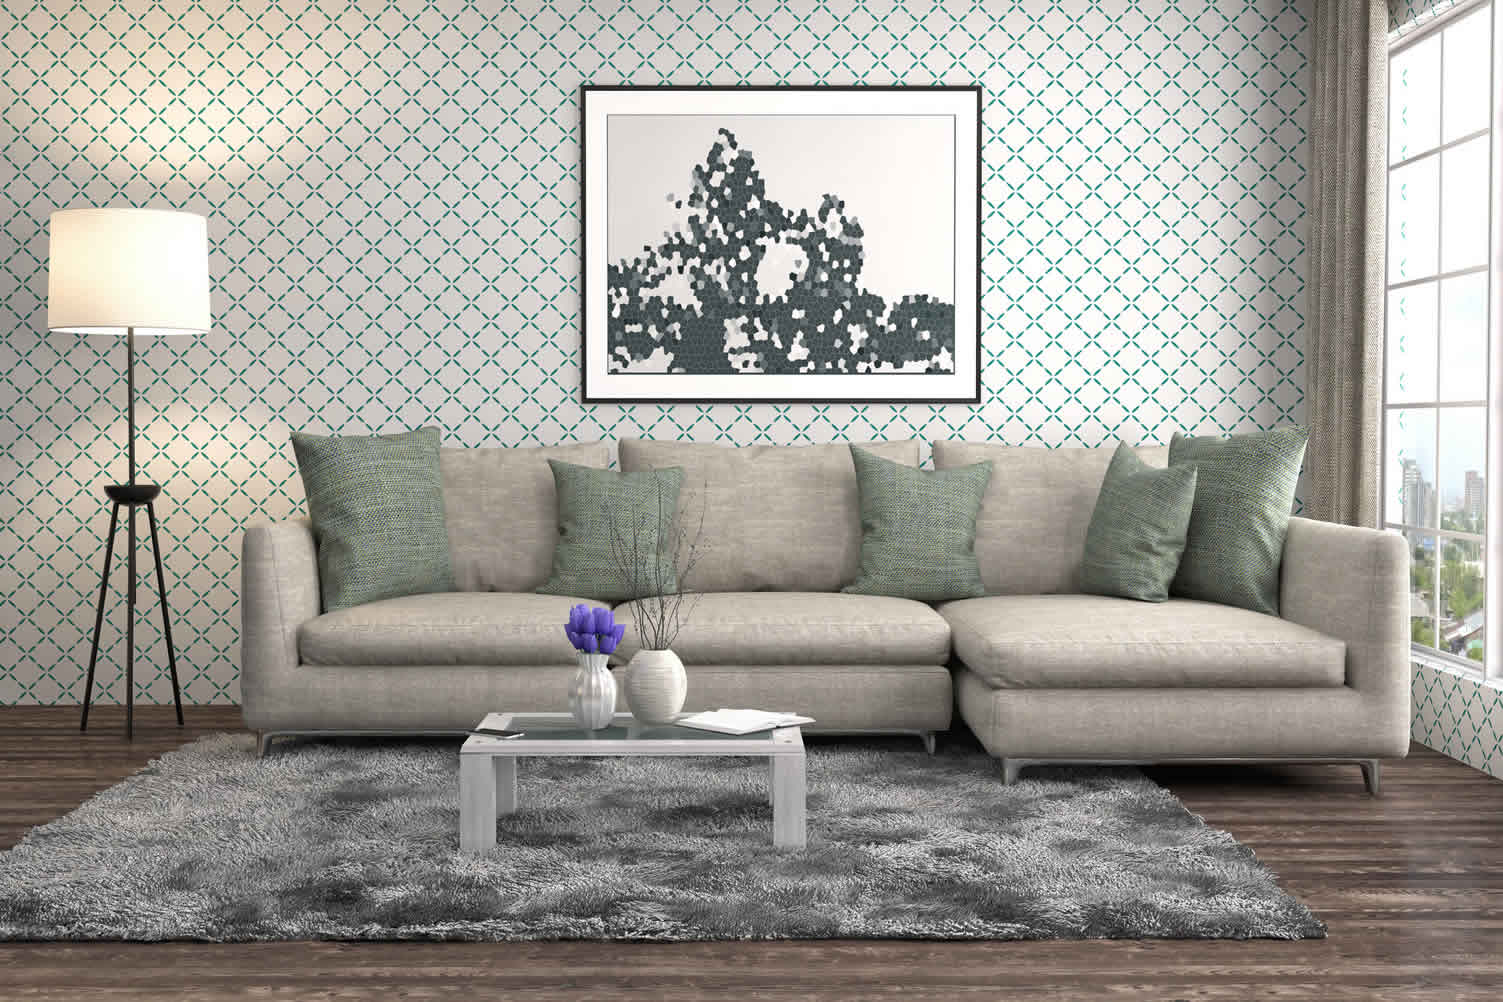 decorate your home with throw pillows